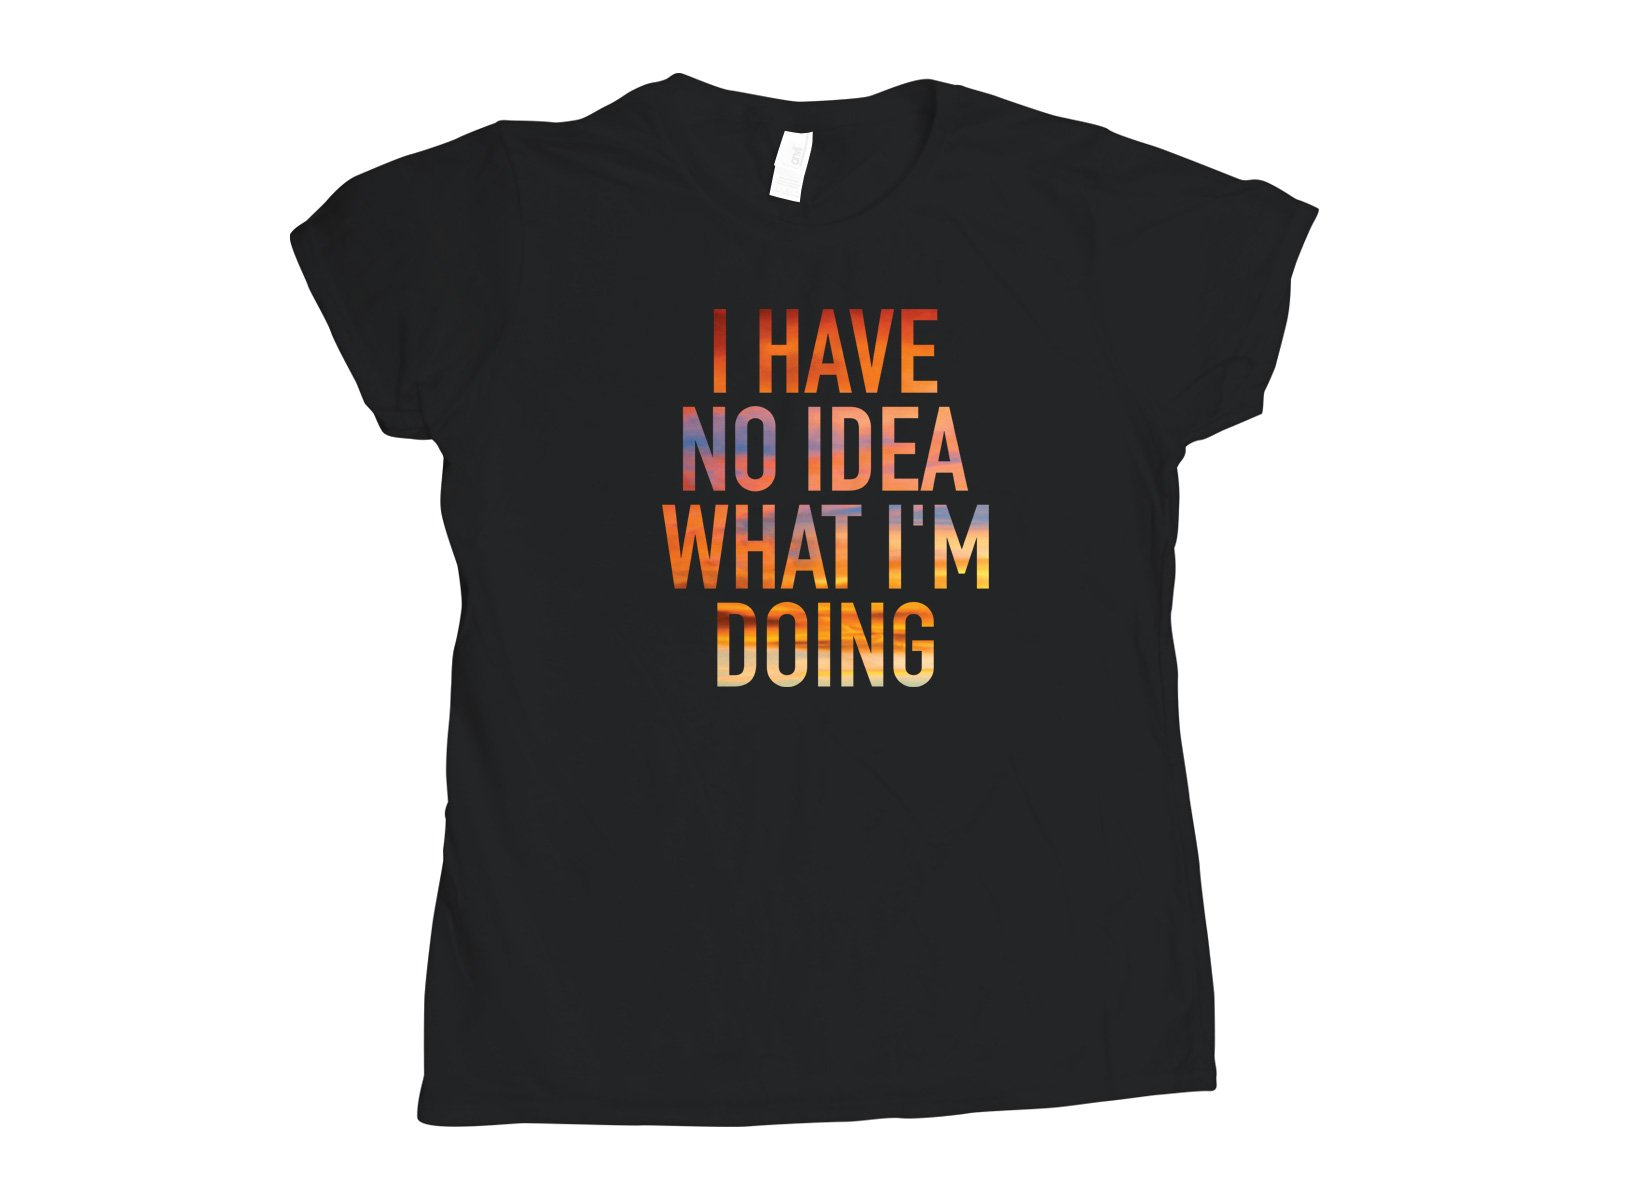 I Have No Idea What I'm Doing on Womens T-Shirt